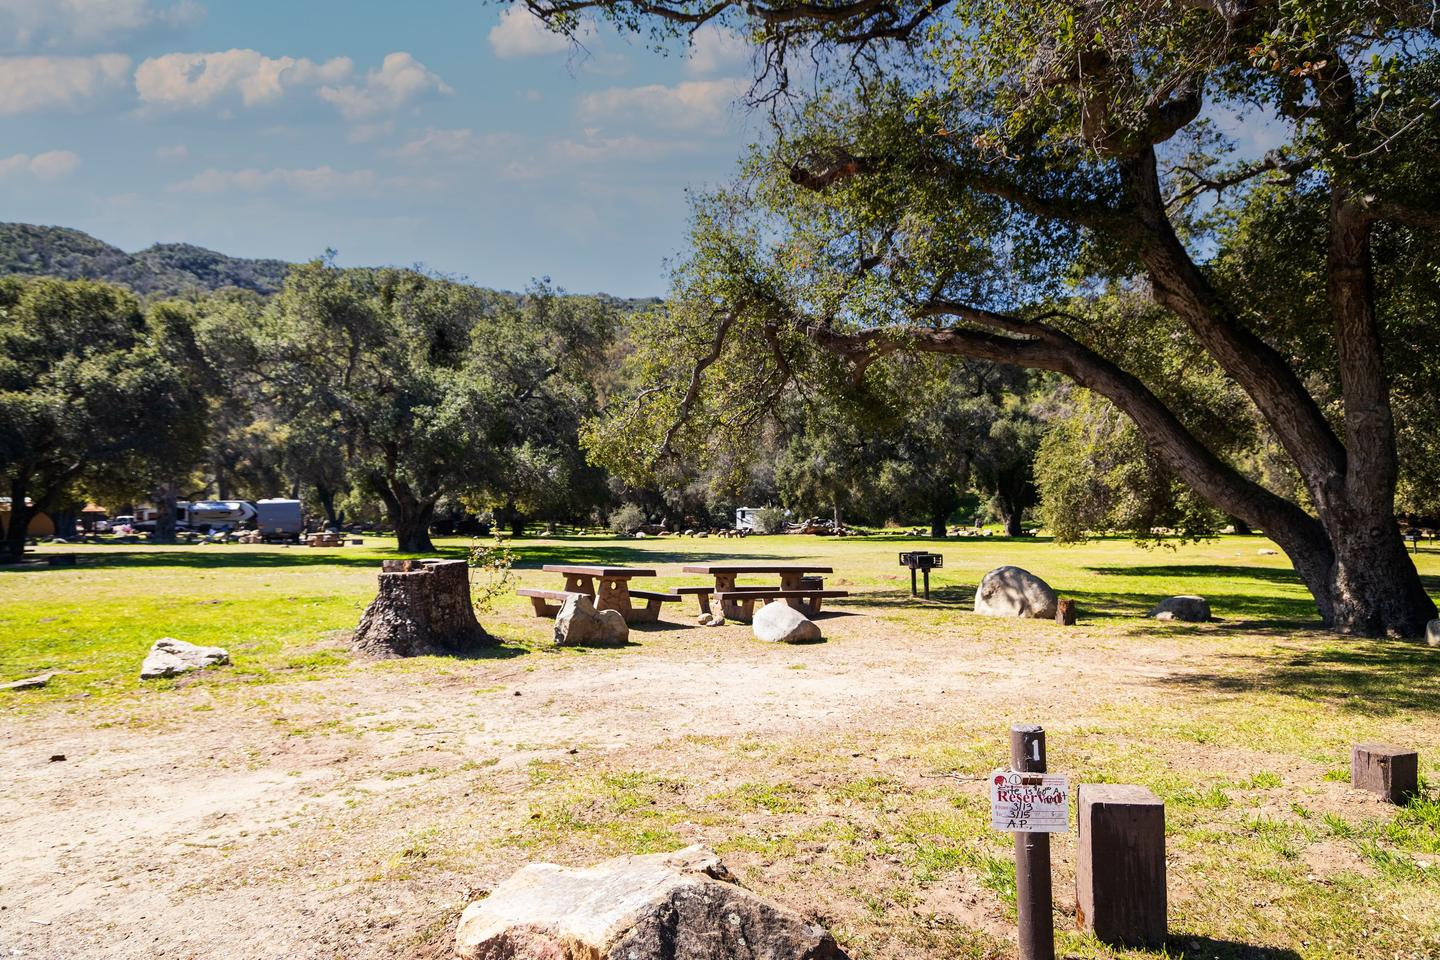 A photo of Site 001 of Loop AREA PARADISE at PARADISE CAMPGROUND with Picnic Table